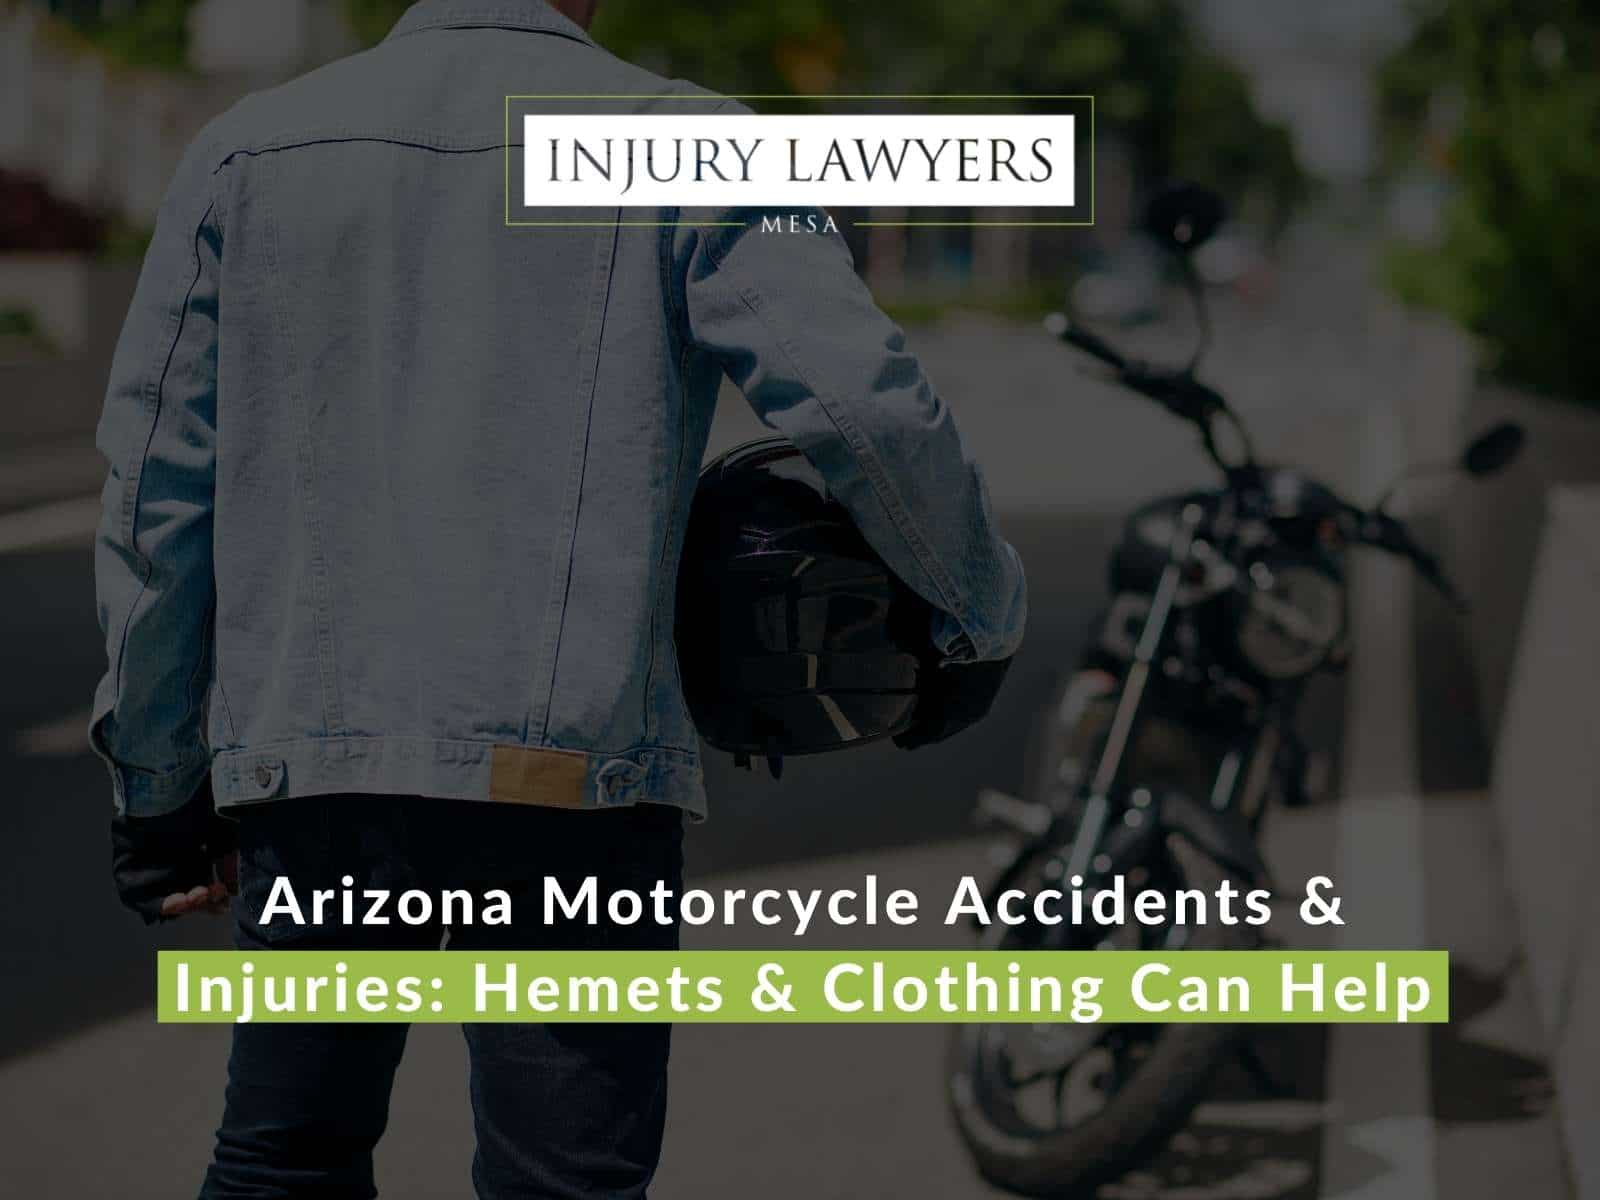 Arizona Motorcycle Accidents & Injuries: Hemets & Clothing Can Help